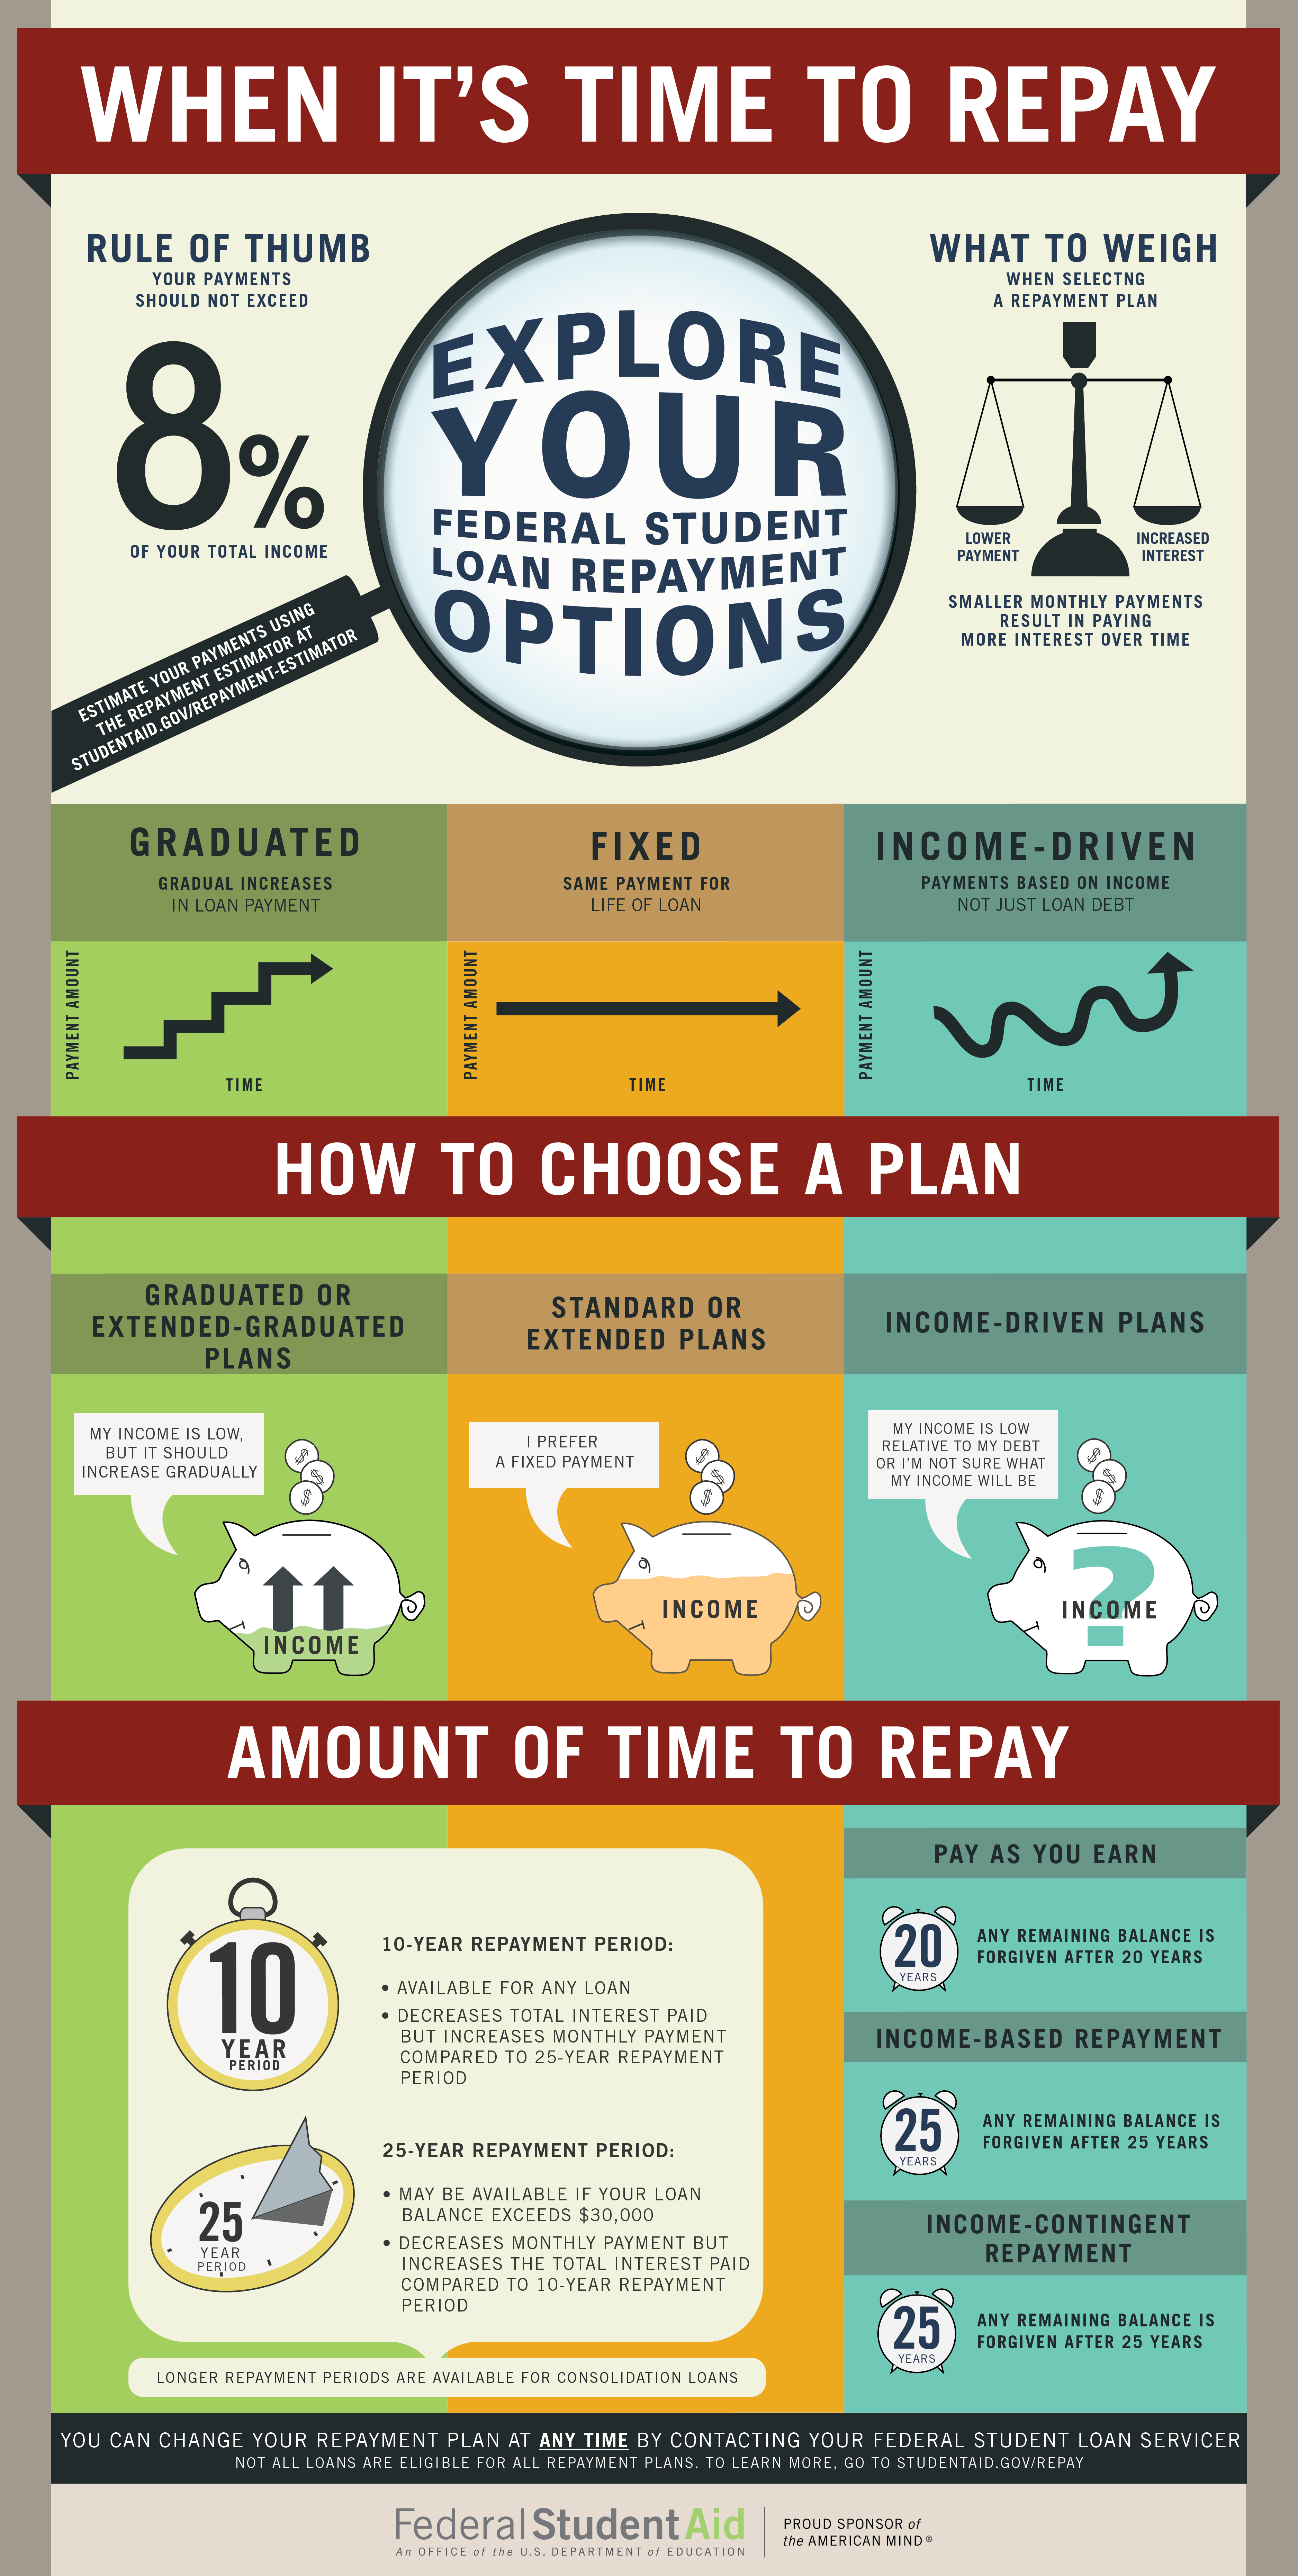 When It's Time To Repay Infographic